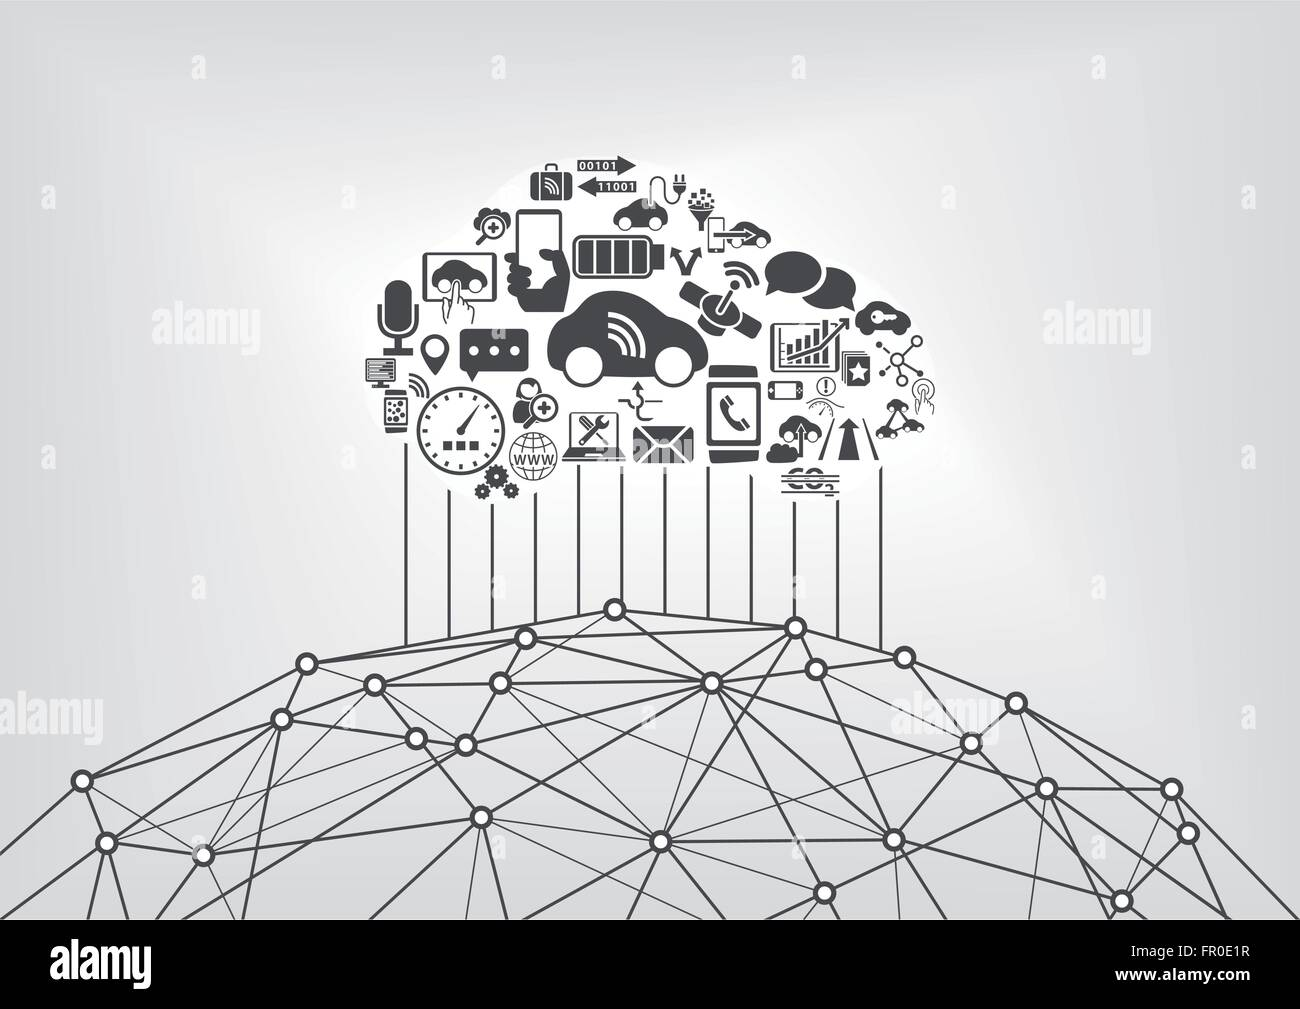 Connected car and internet of things infographic concept. Driverless cars connected to the world wide web. - Stock Image